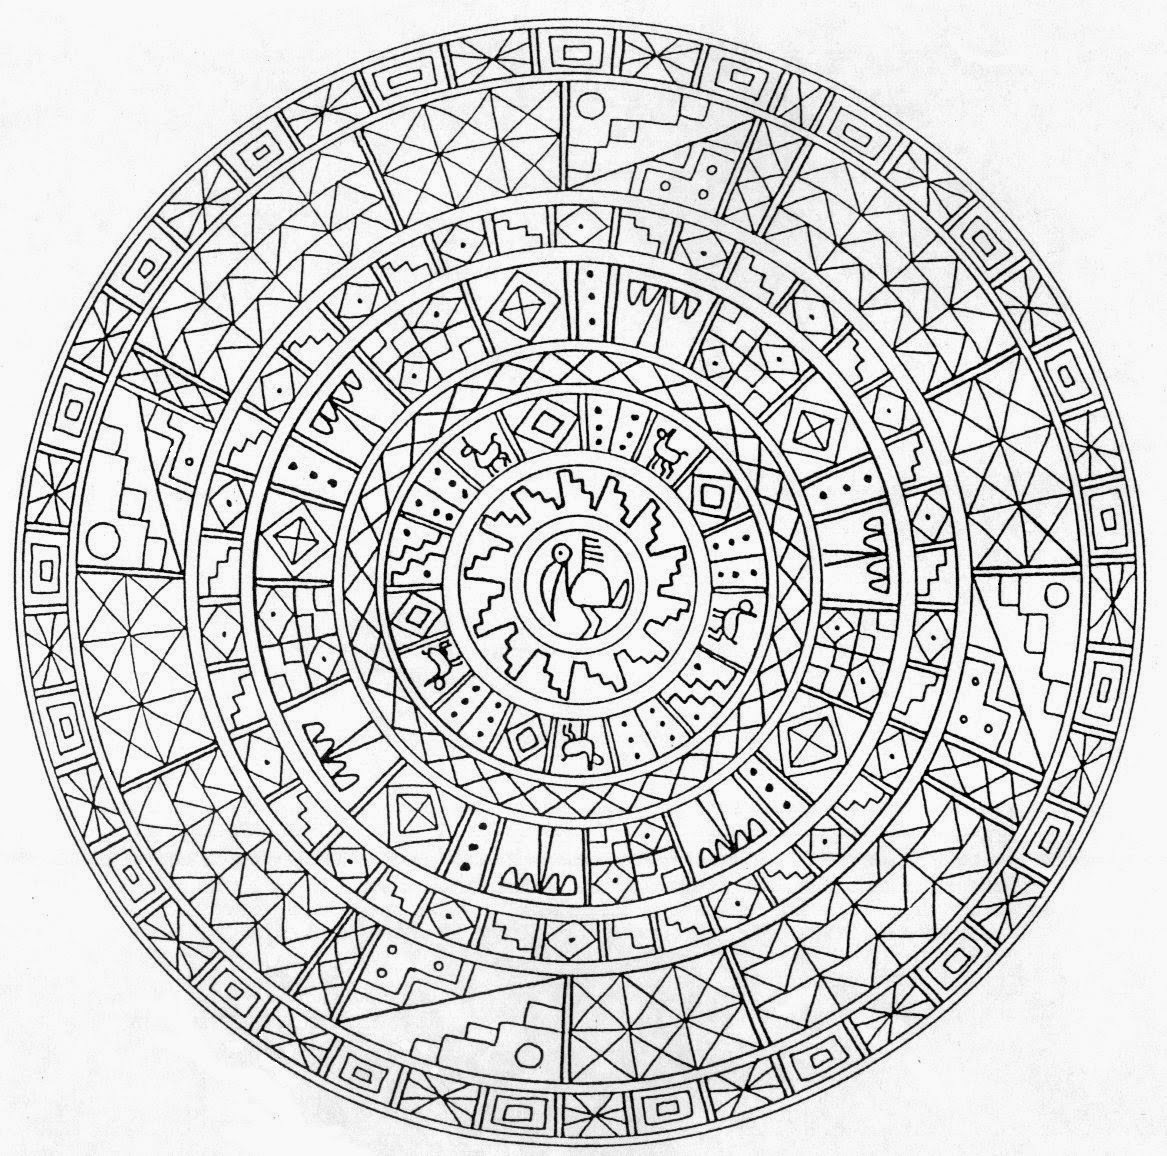 Printable mandalas for adults for Printable mandala coloring pages for adults